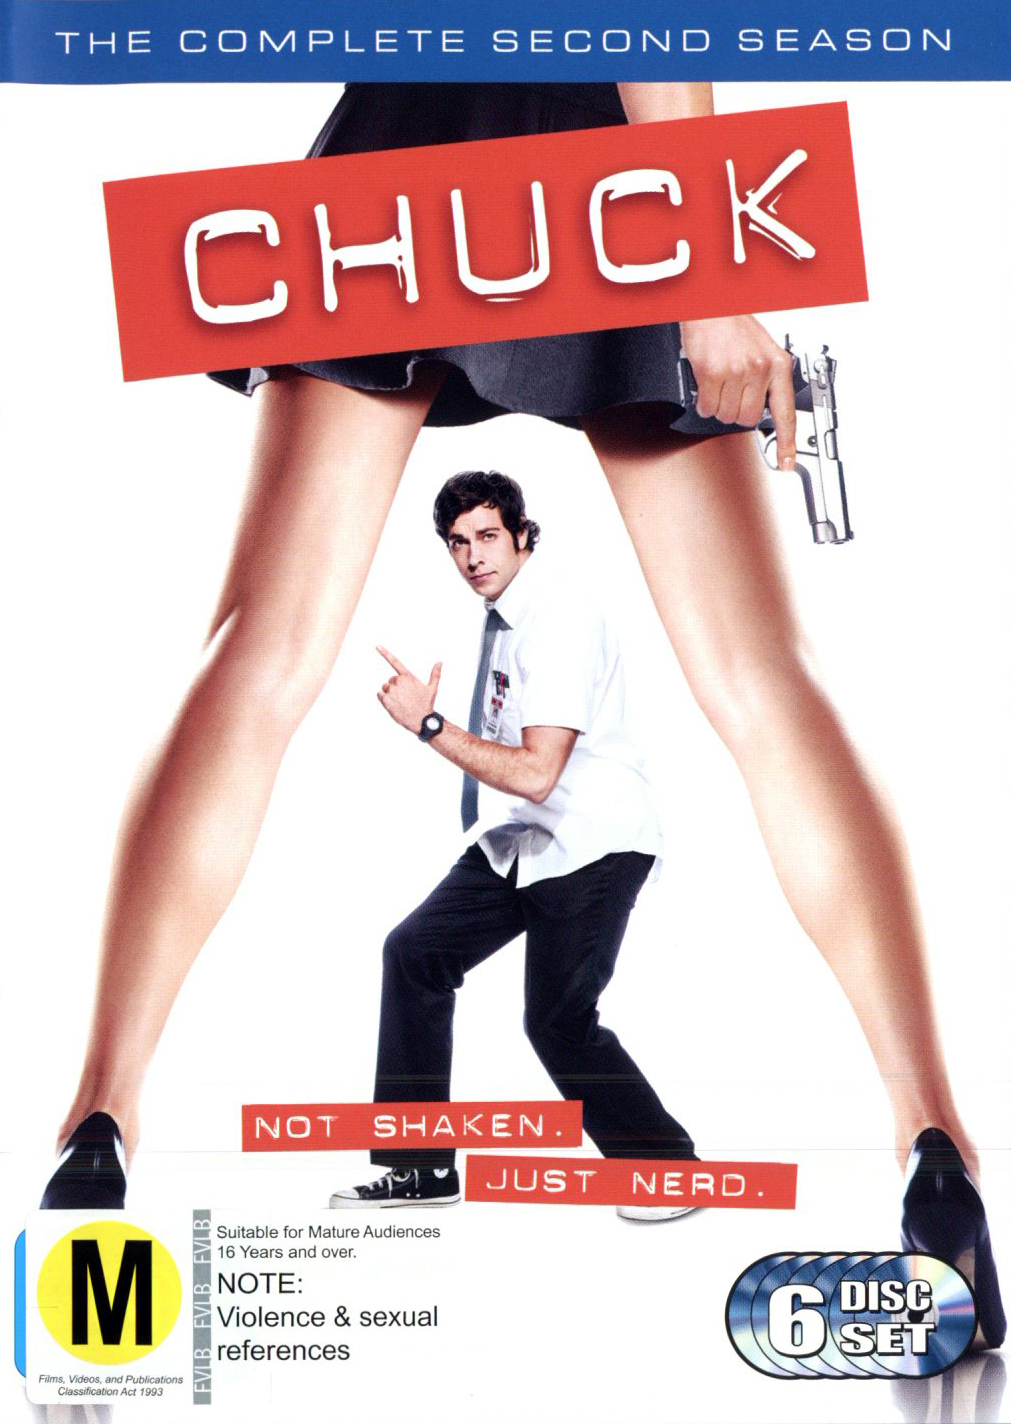 Chuck - The Complete 2nd Season (6 Disc Set) DVD image